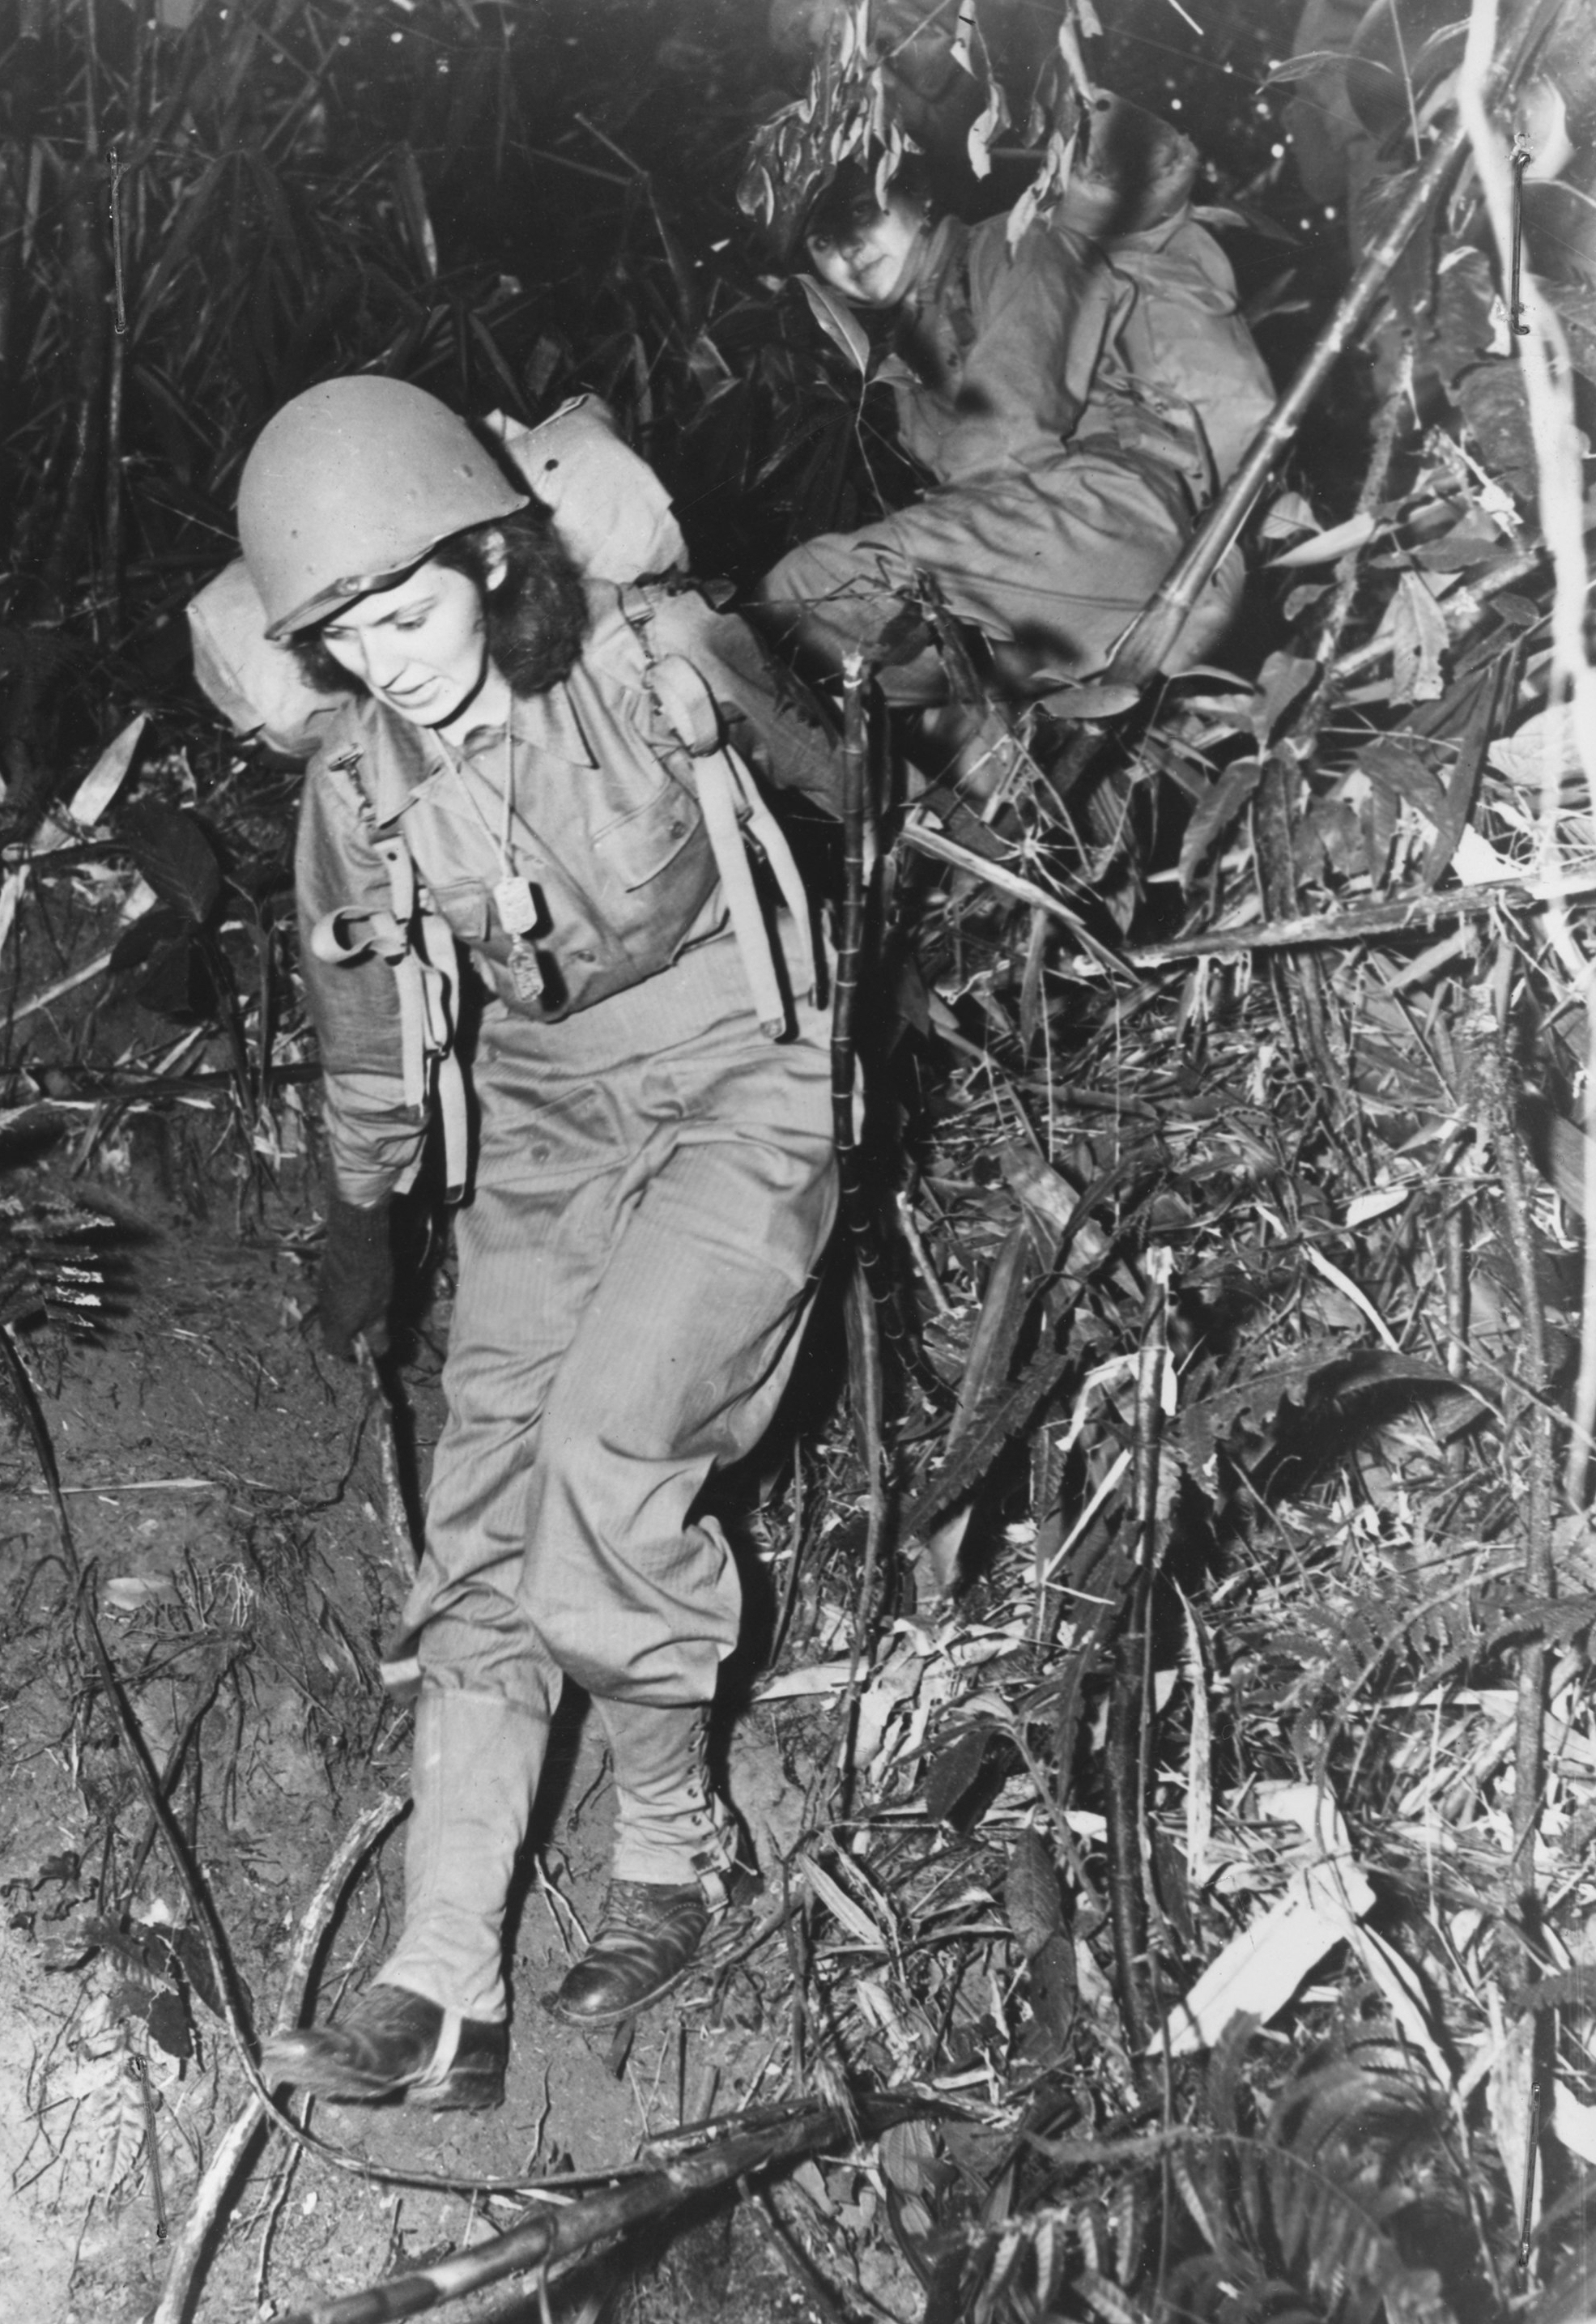 Army Nurses Hiking Through Jungle of India-Burma Border